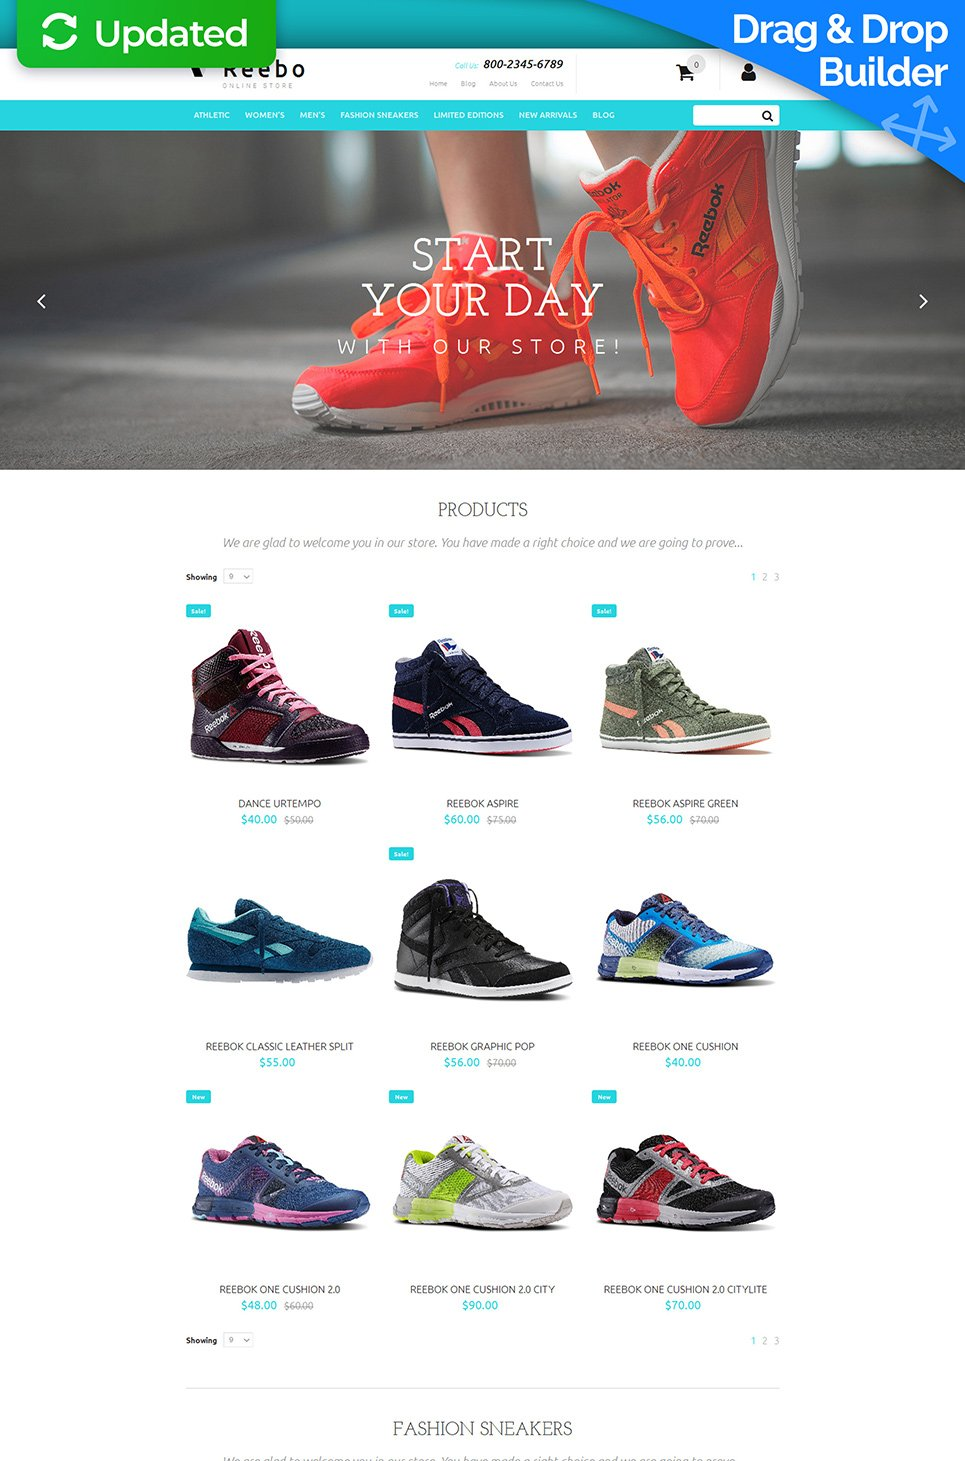 Reebo Ecommerce Website Template - image